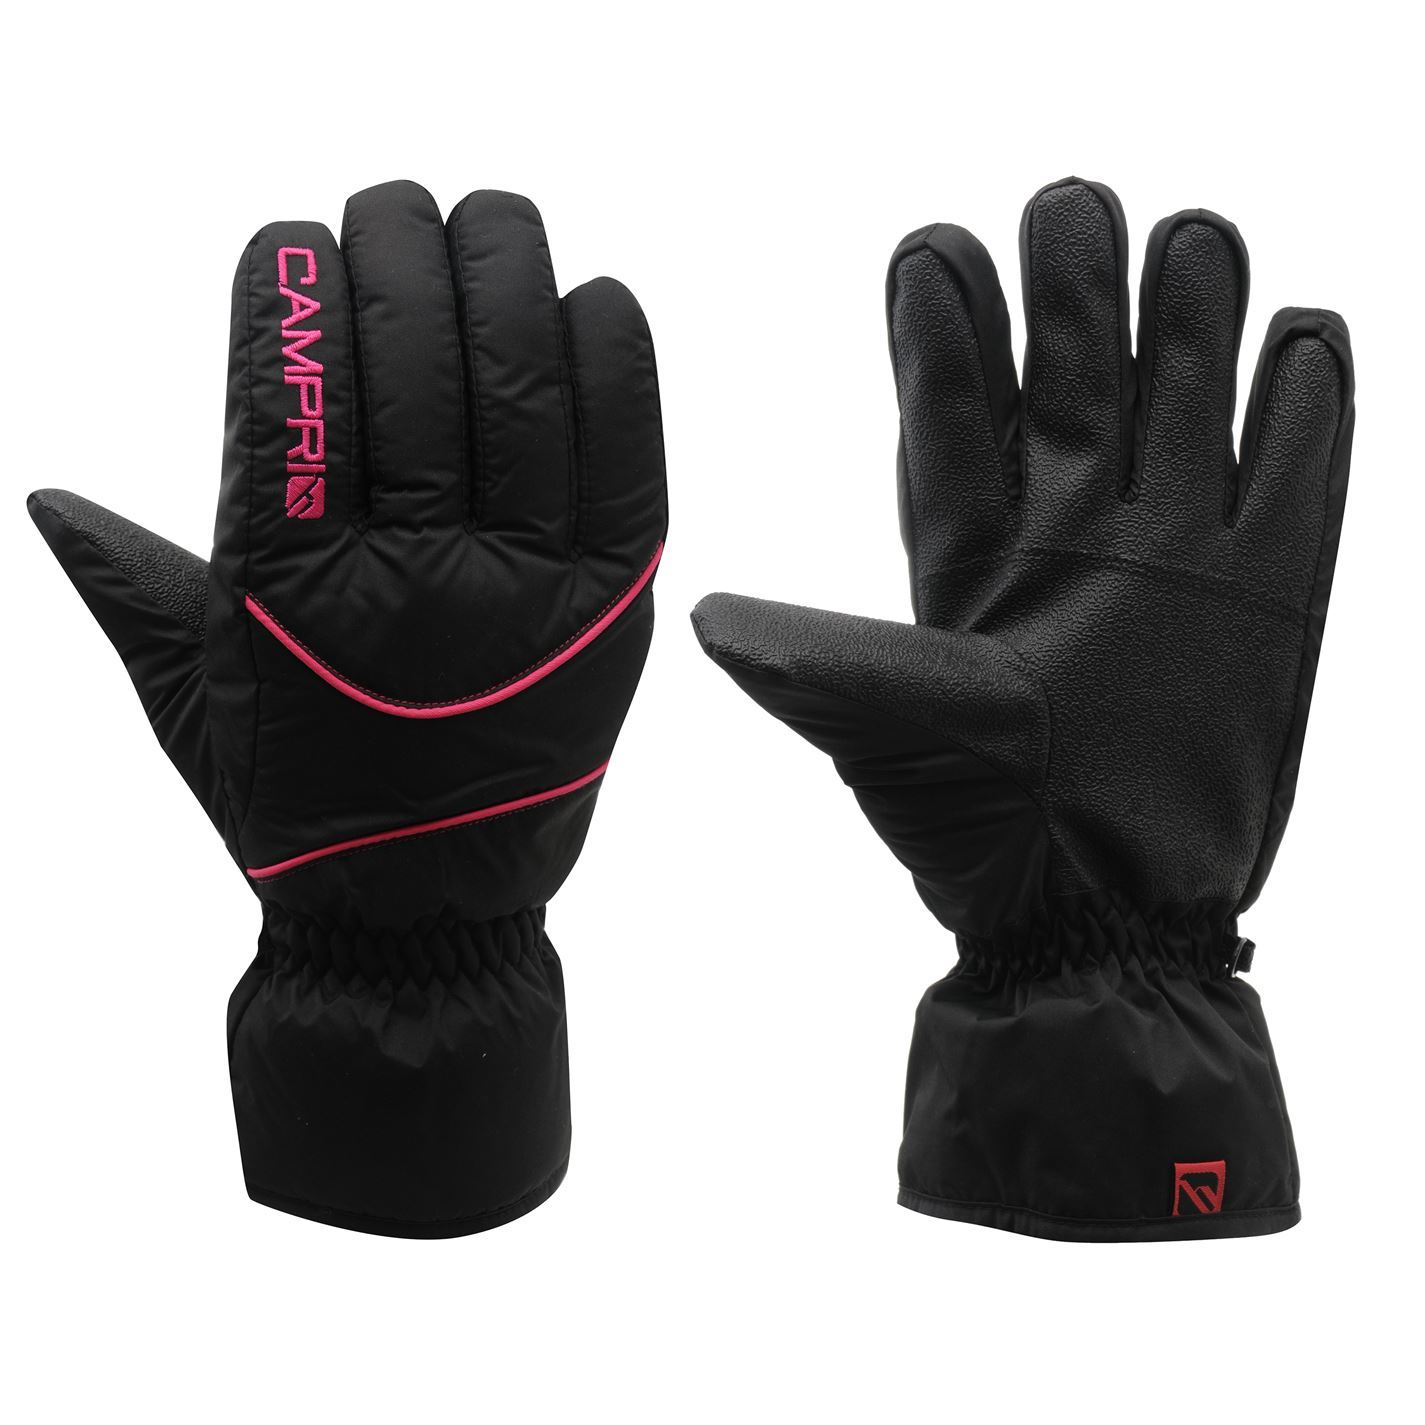 Shop girls' winter gloves from DICK'S Sporting Goods. Browse a wide selection of girls' winter gloves & mittens from The North Face, Nike & Under Armour.